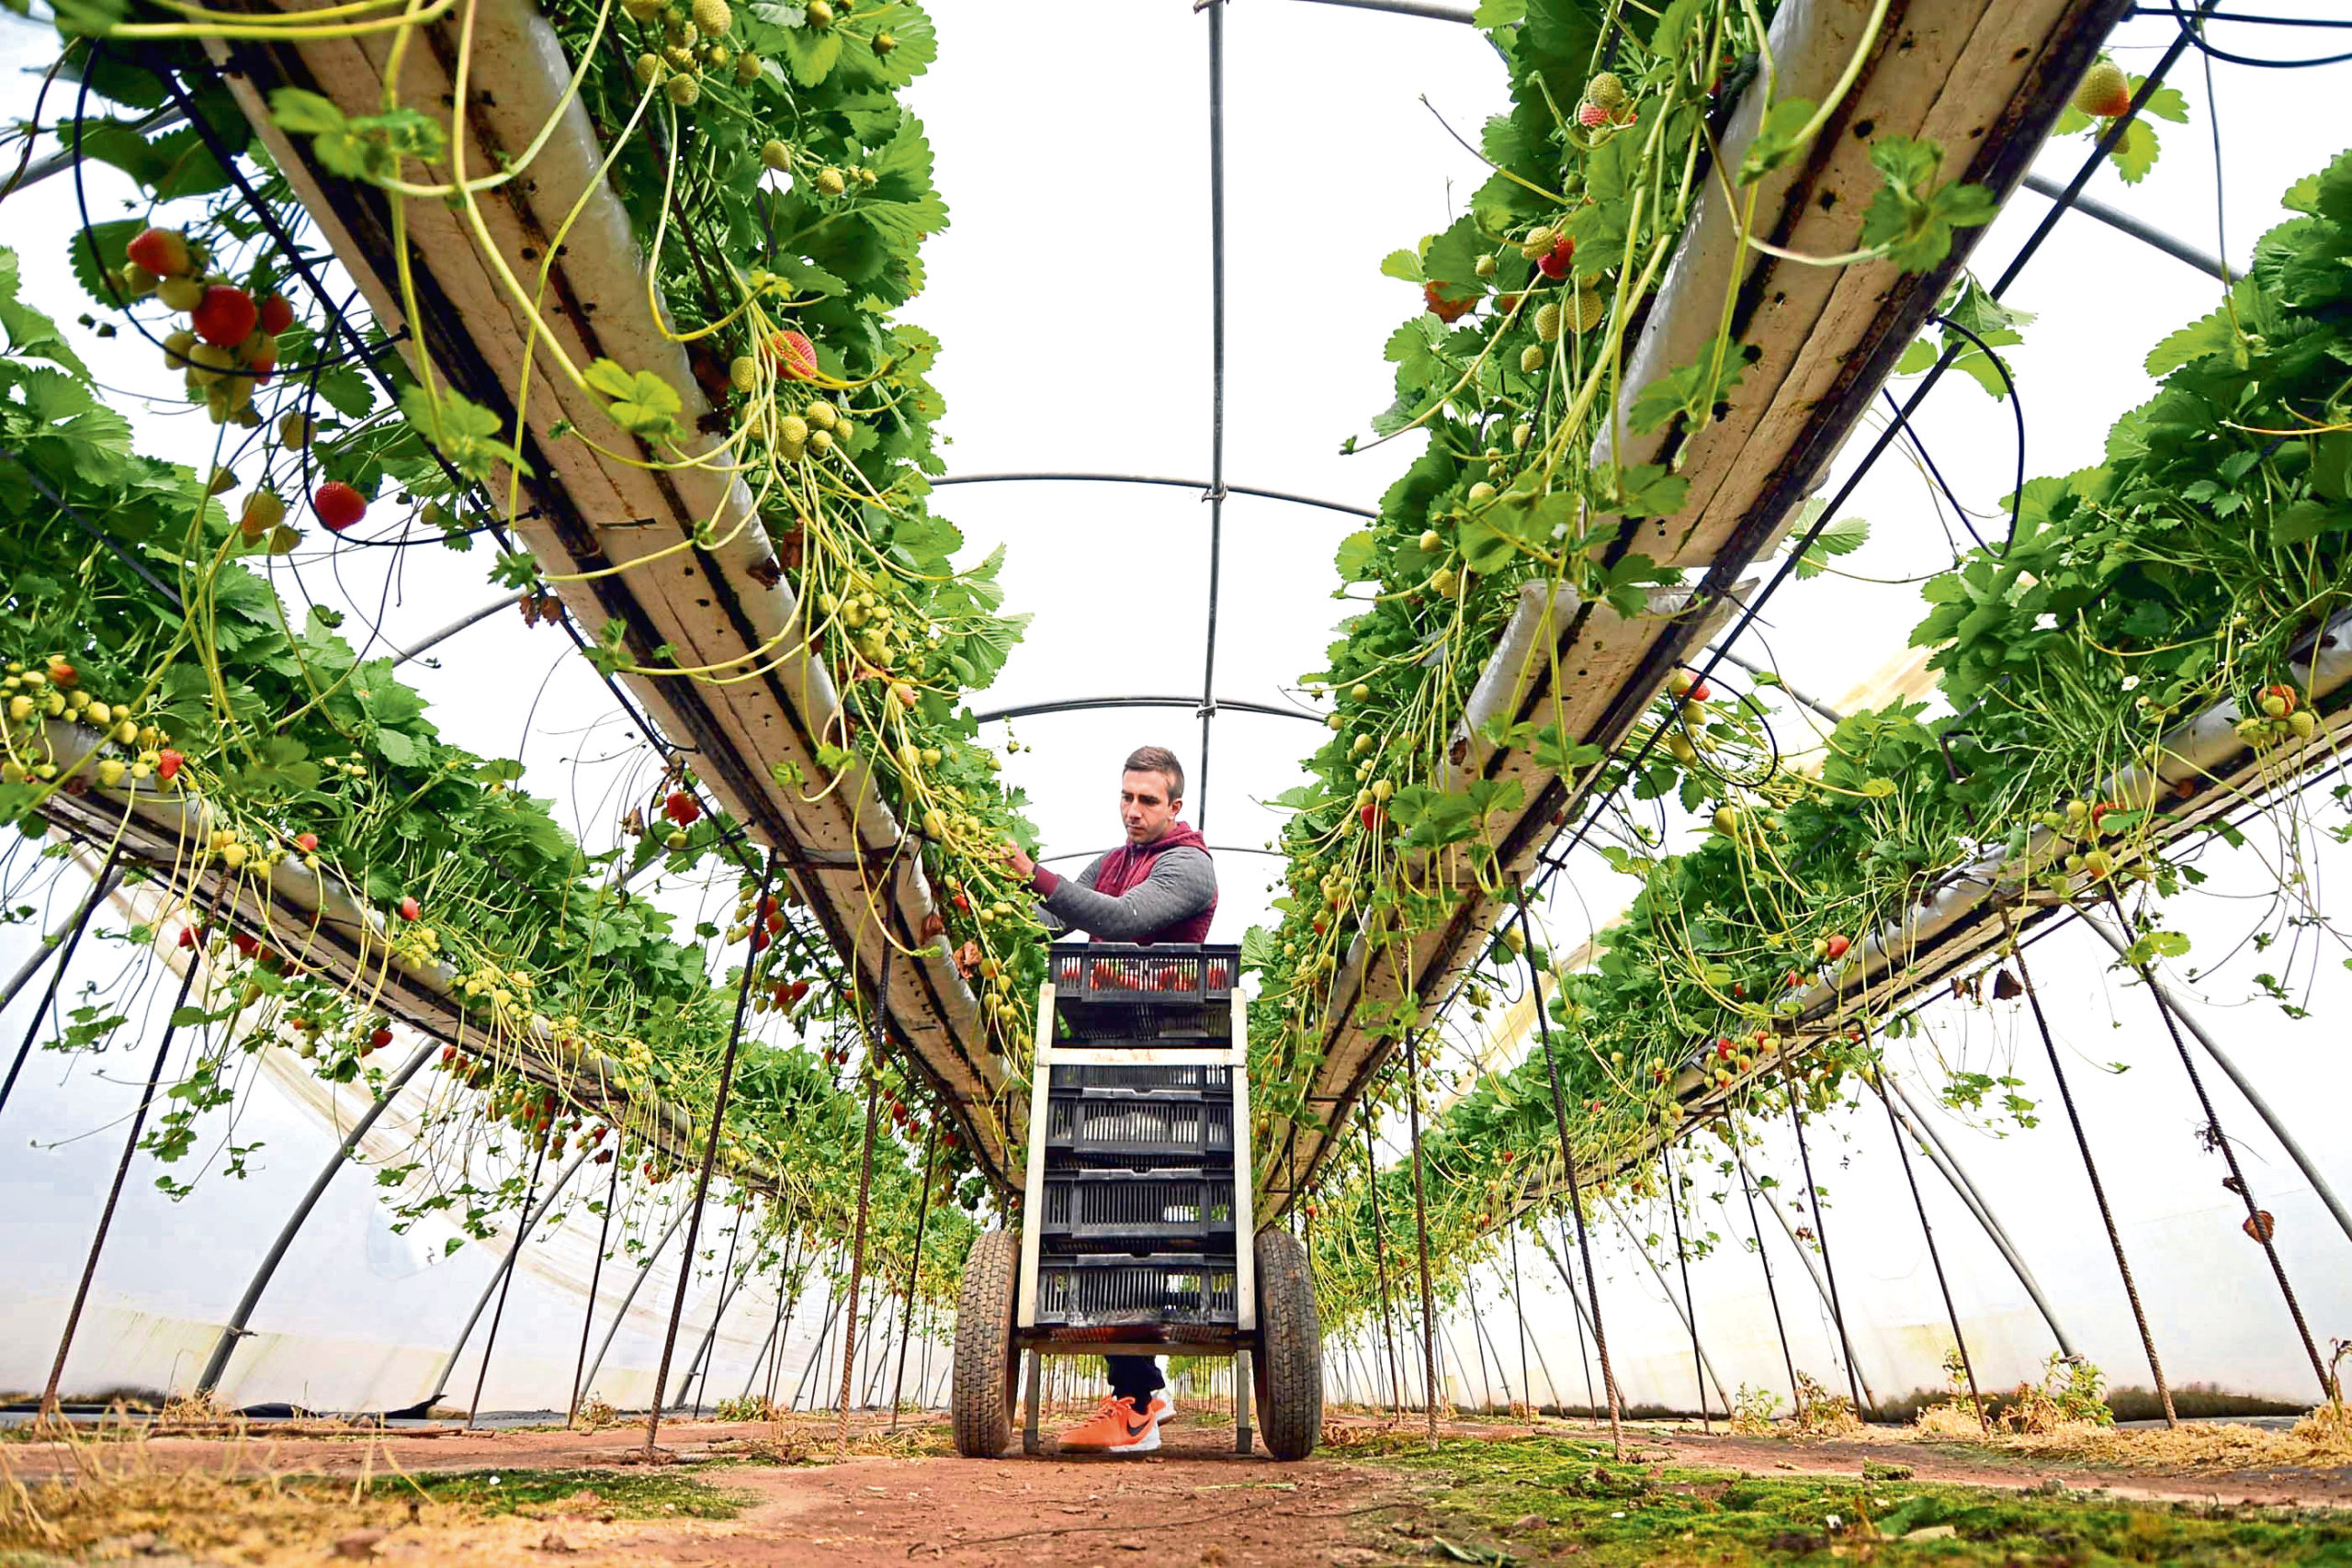 Efforts are being made to recruit UK workers to pick fruit and vegetables during the Covid-19 crisis.